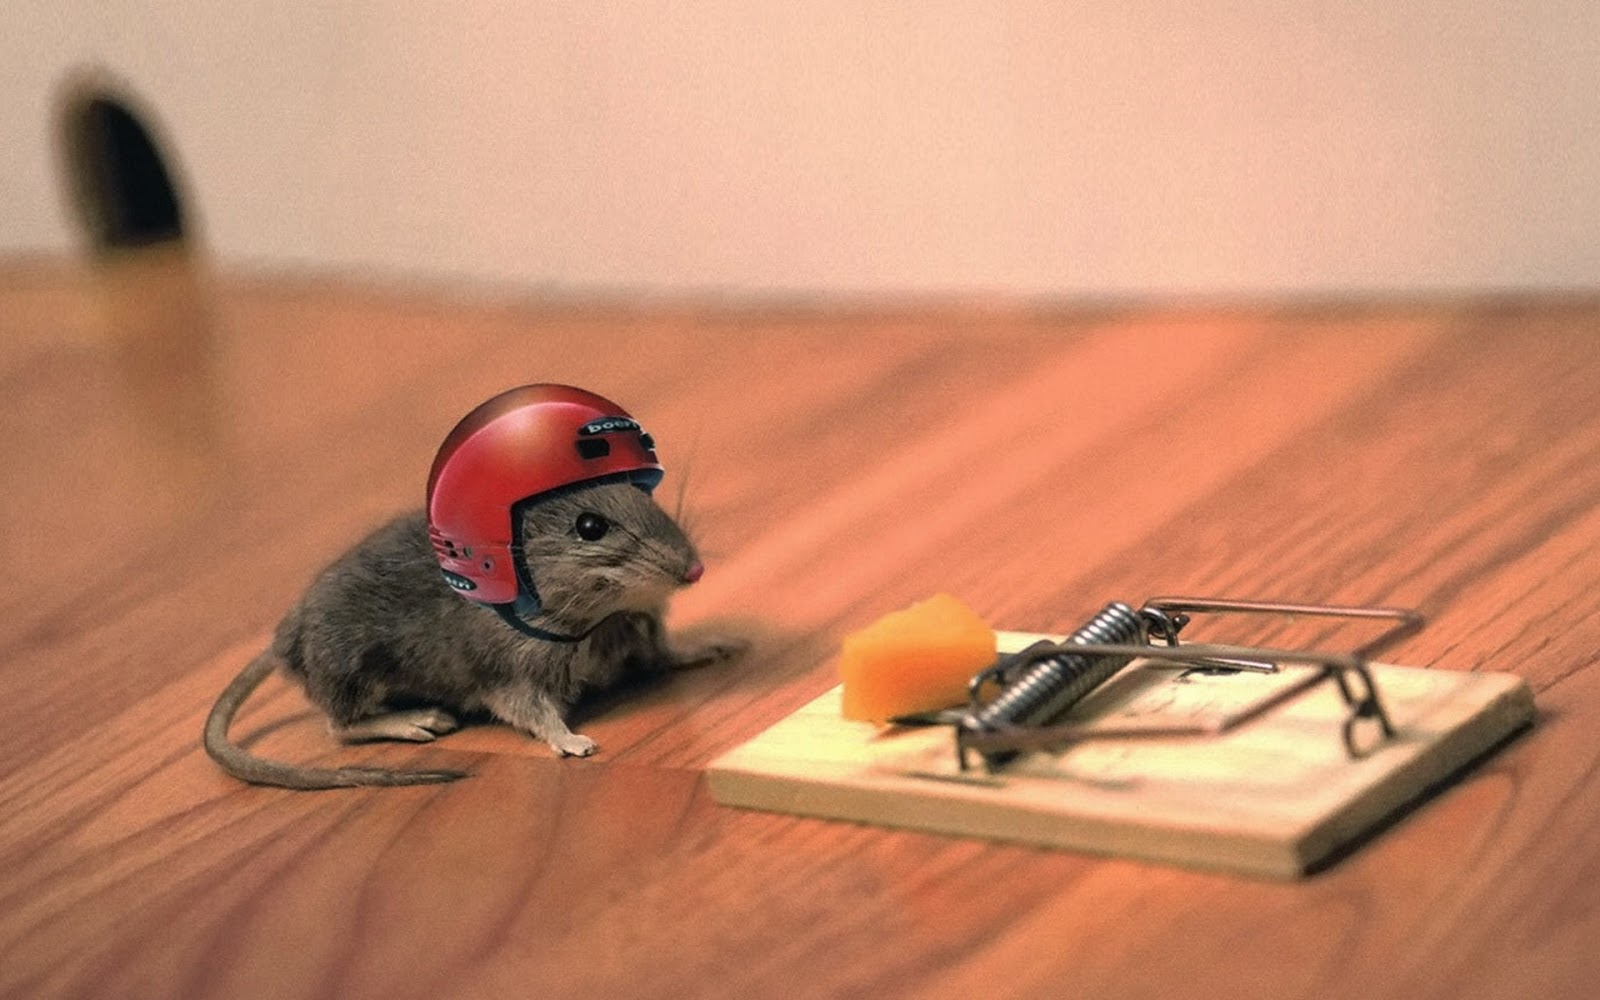 mice-with-helmet-funny-image-for-kids-and-toddlers.jpg